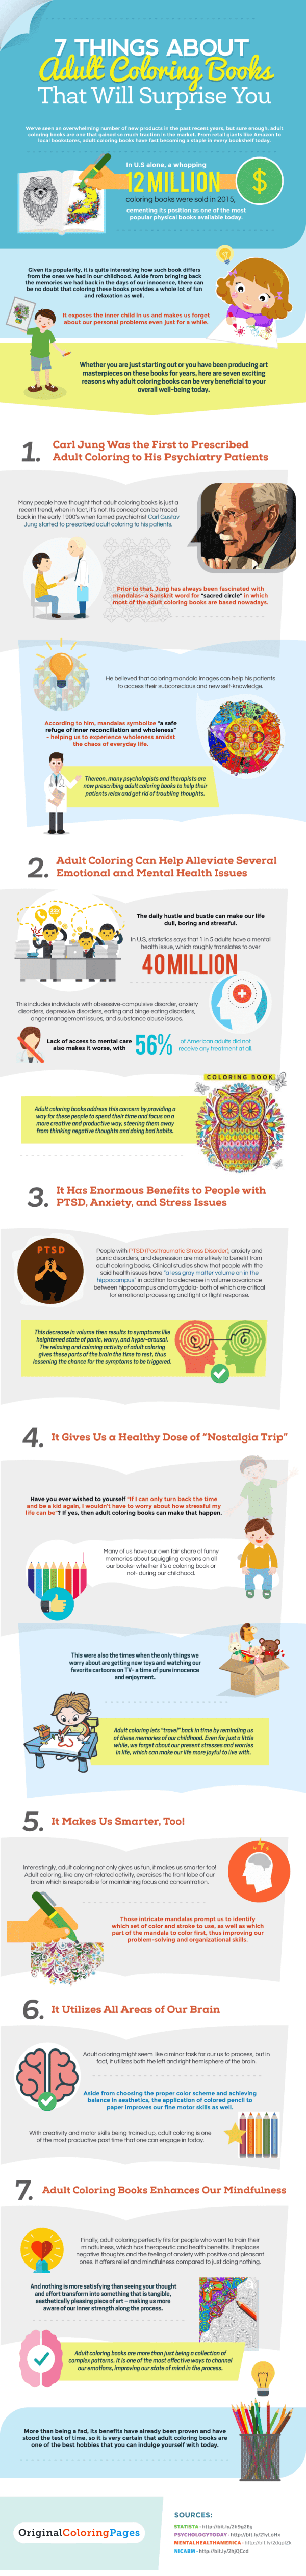 benefits_of_coloring-books-infographic